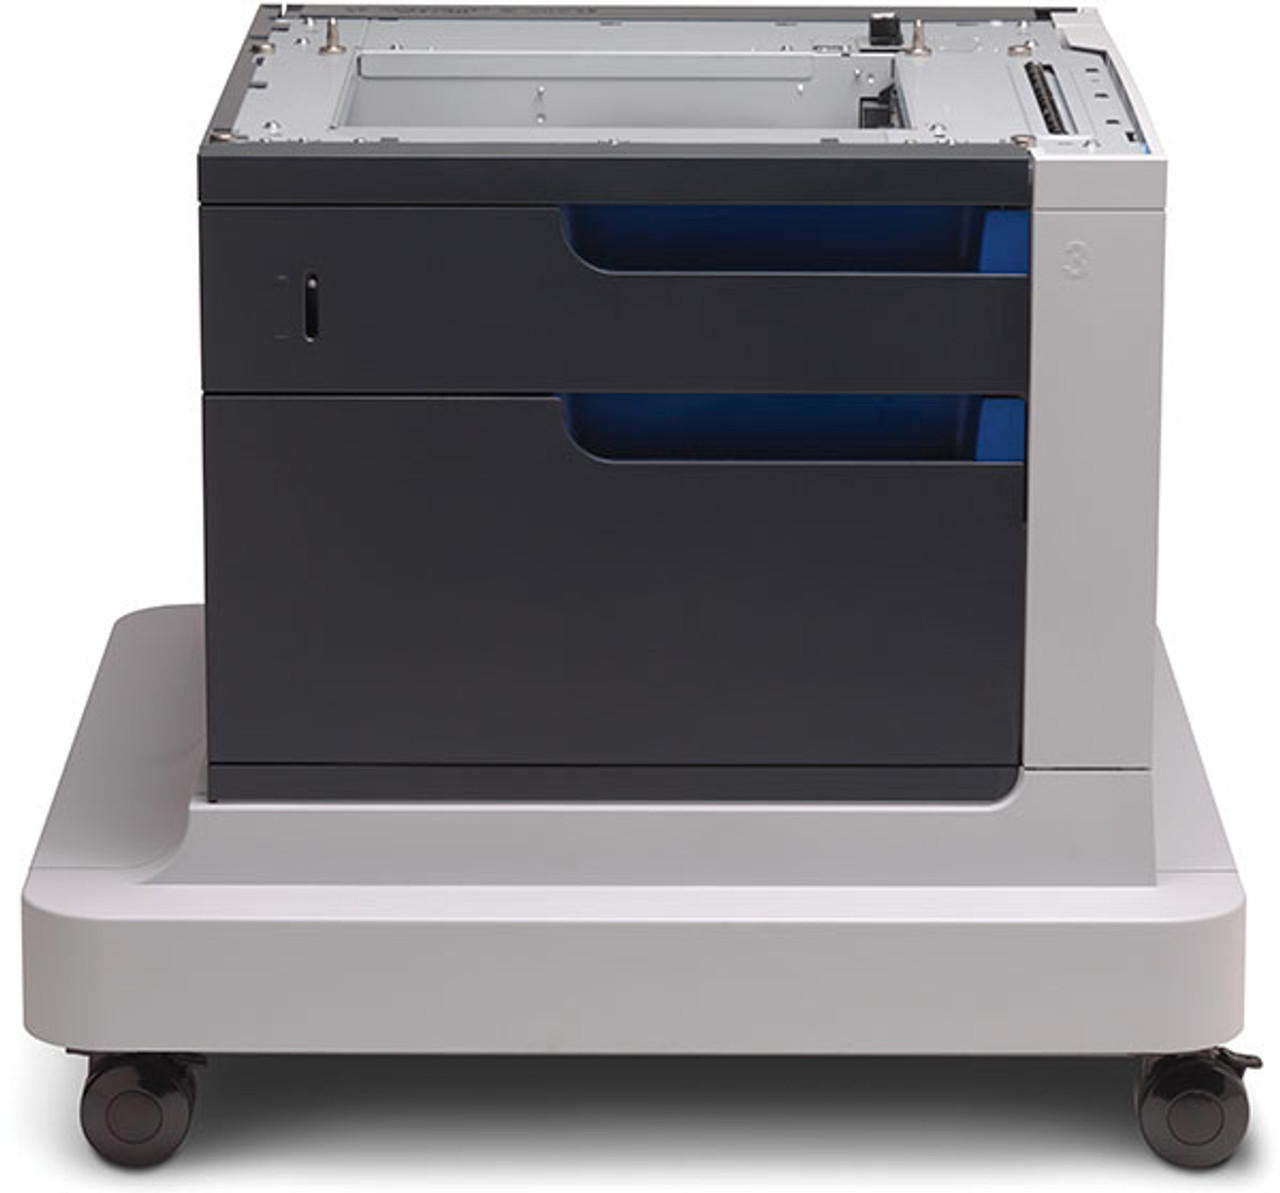 500 Sheet Optional Paper Tray Cabinet for HP CP4025 CP4525